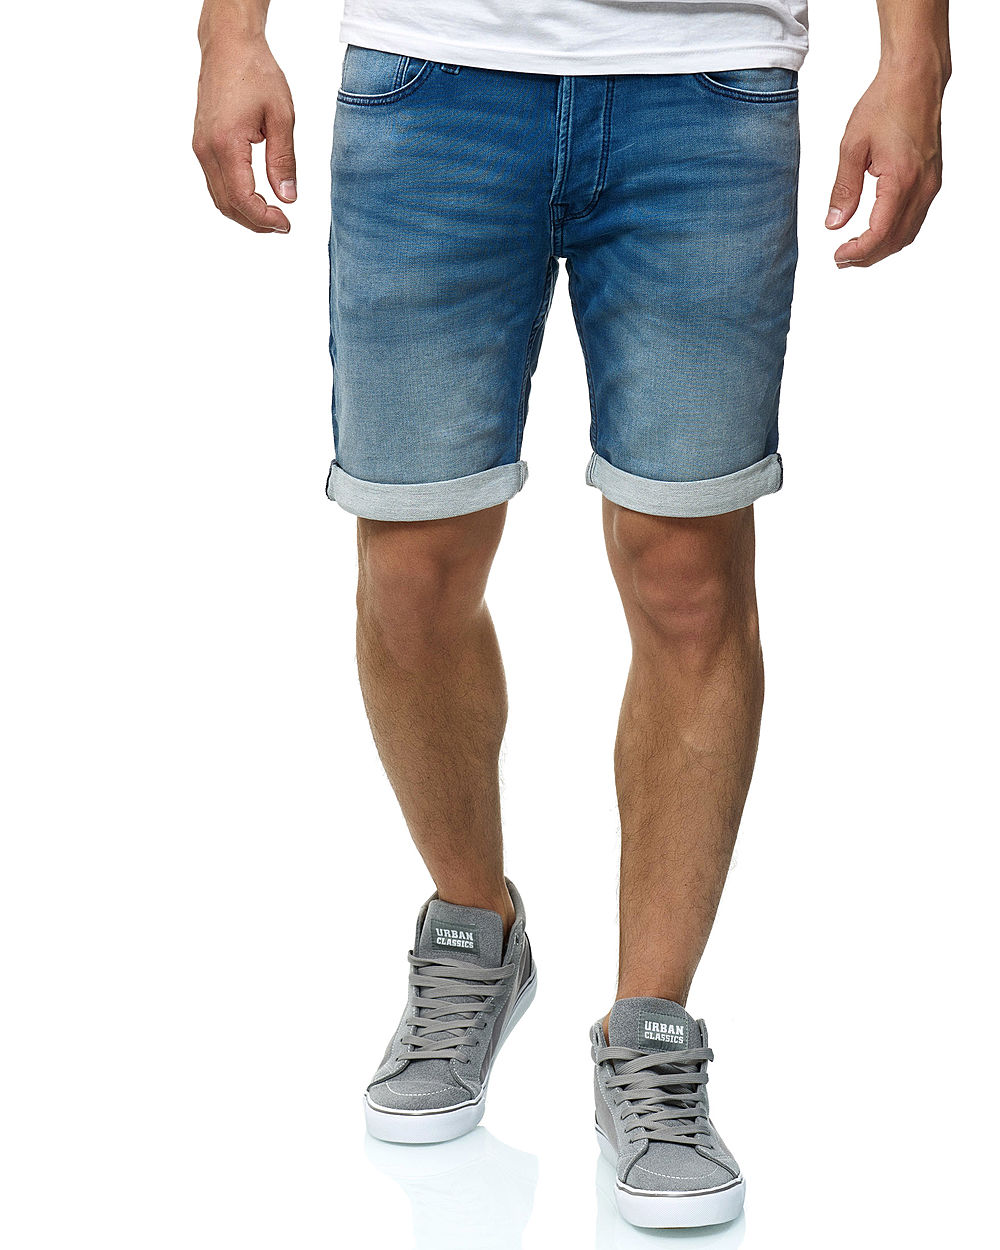 Jack and Jones Herren Denim Bermuda Jeans Shorts 5-Pockets hell blau denim - Art.-Nr.: 19072746-S-DN